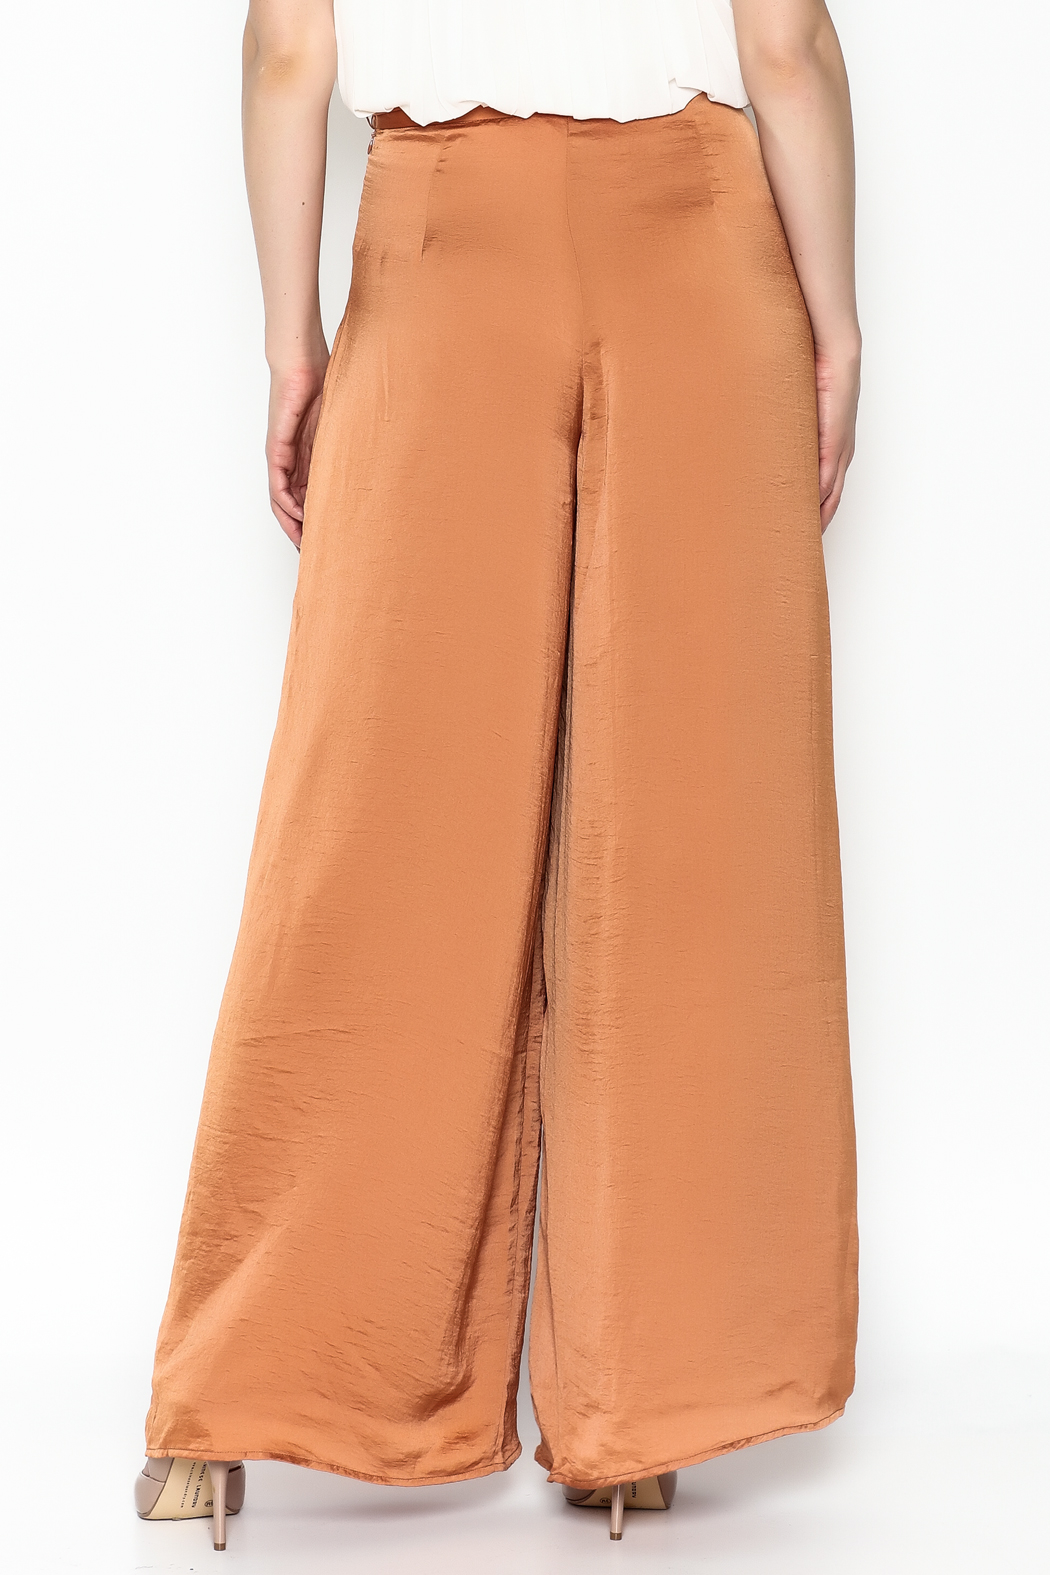 Lucy Paris Terra Cotta Pants - Back Cropped Image